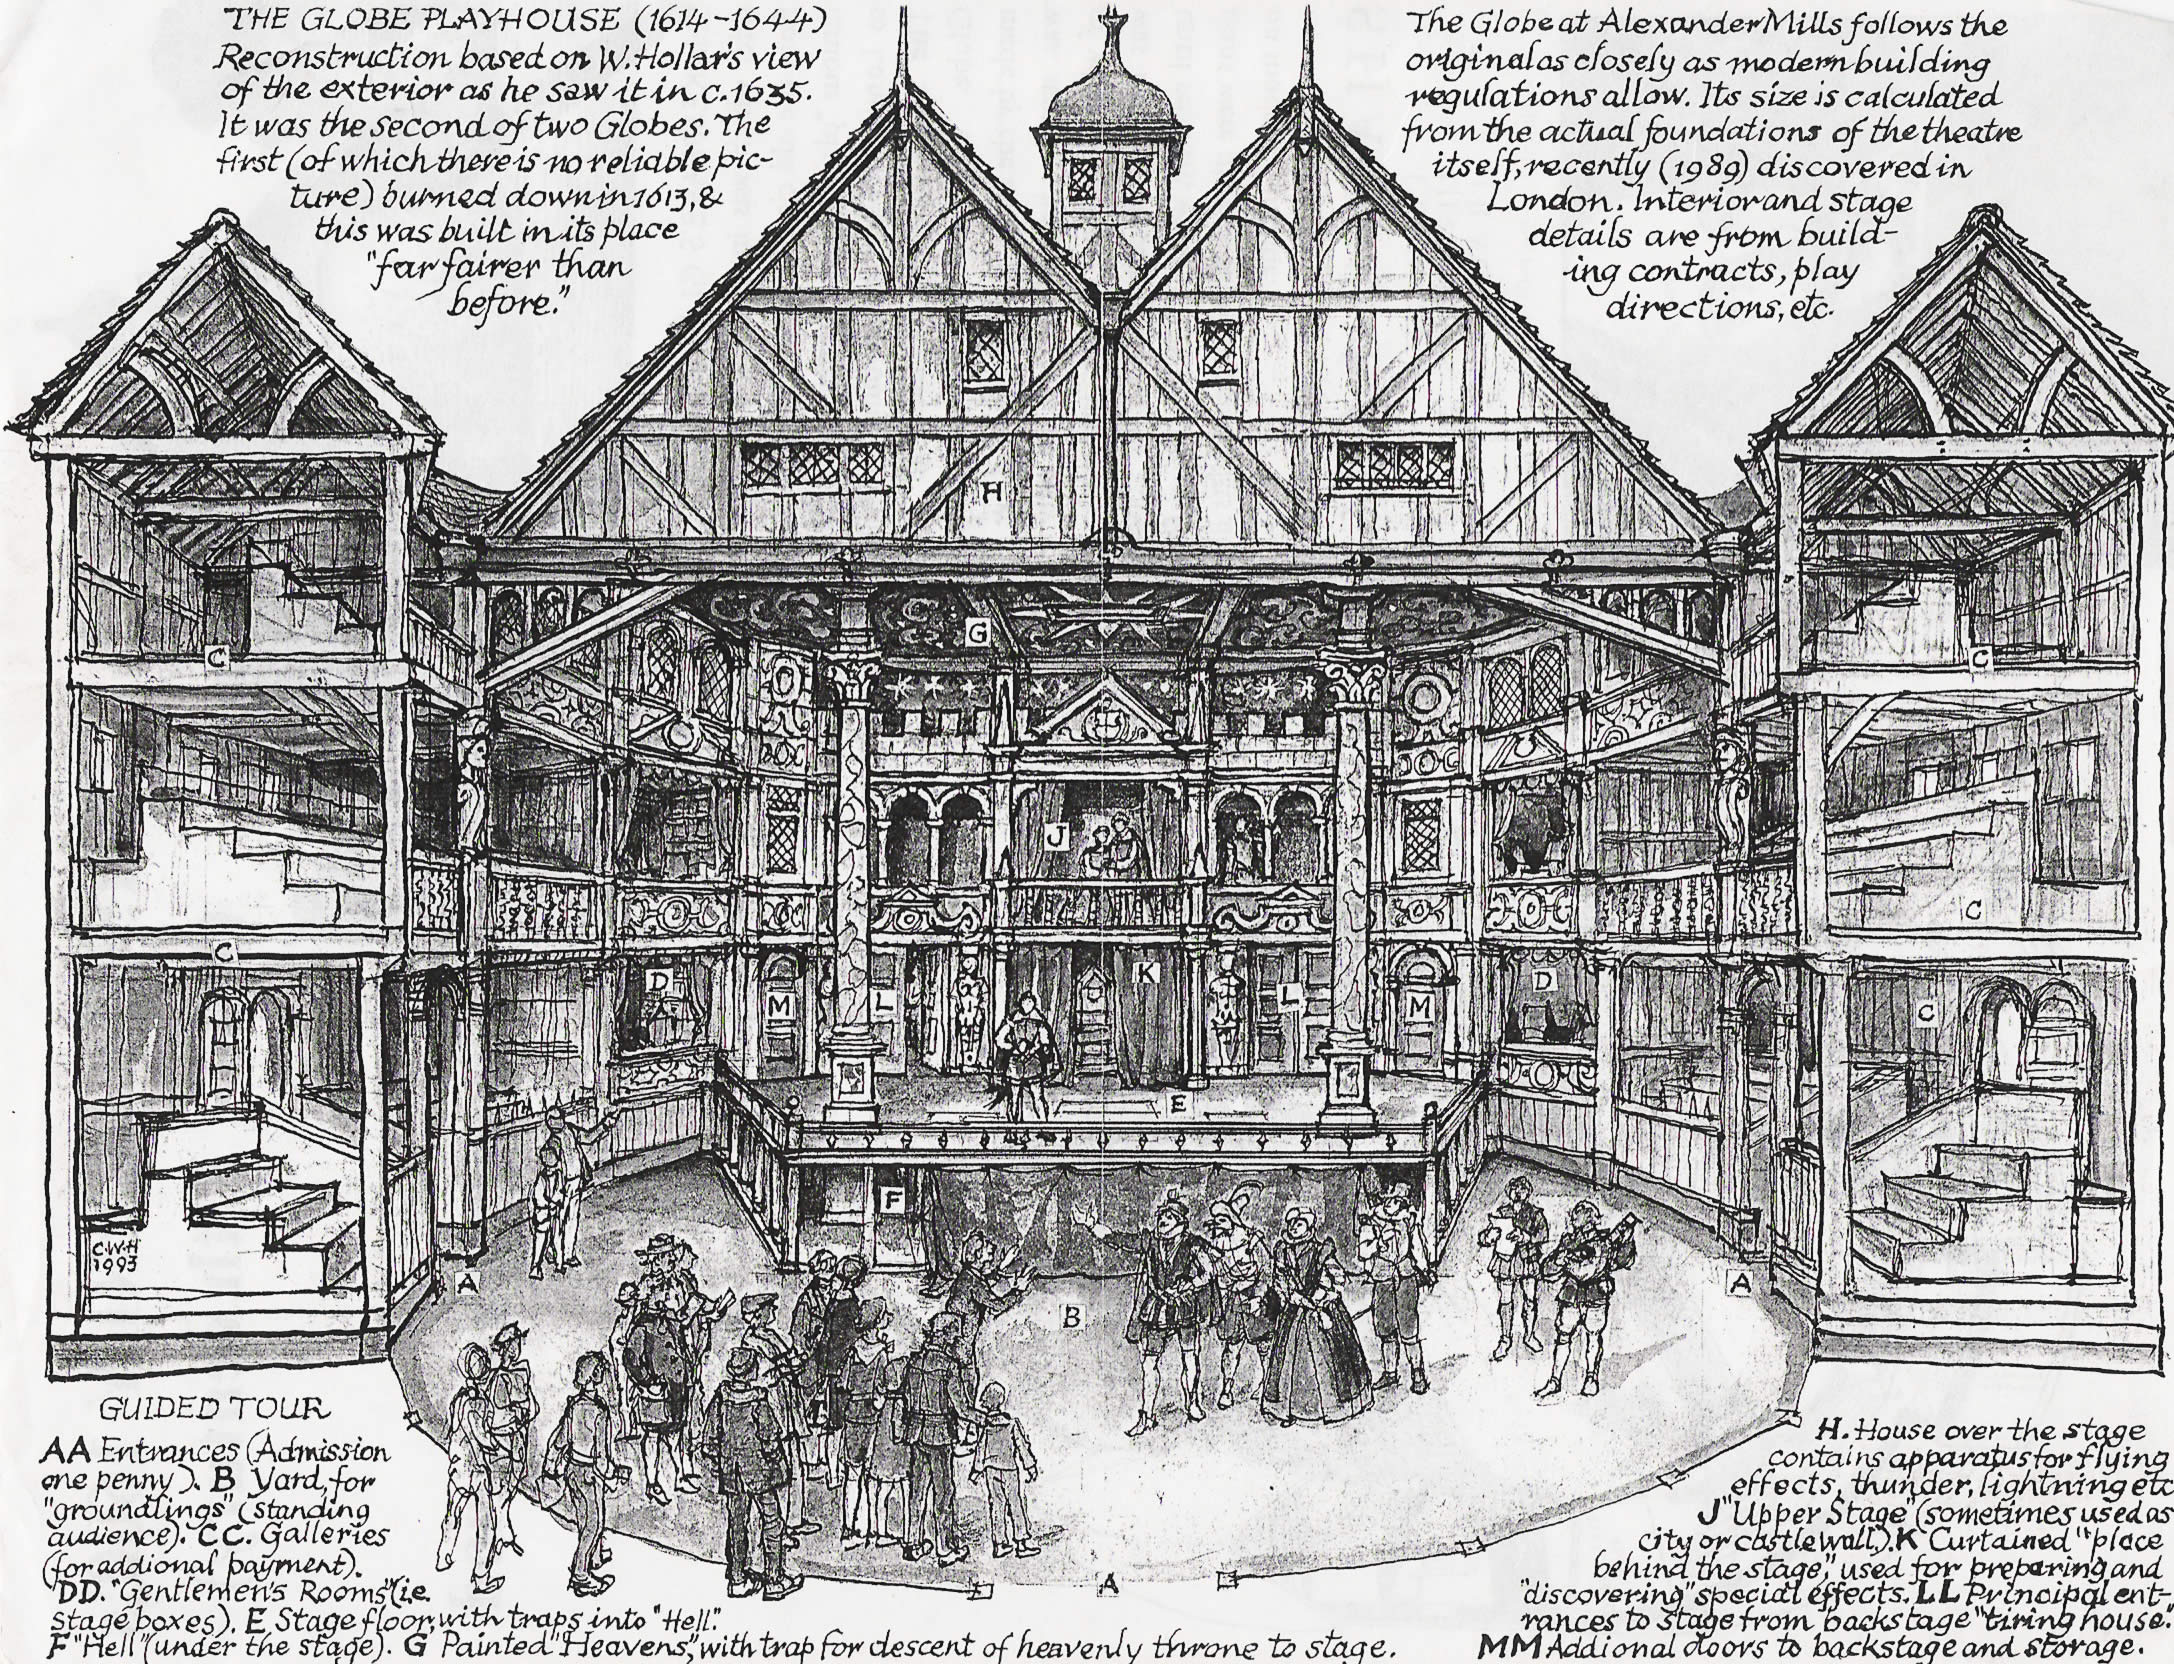 Impression of the Globe's interior